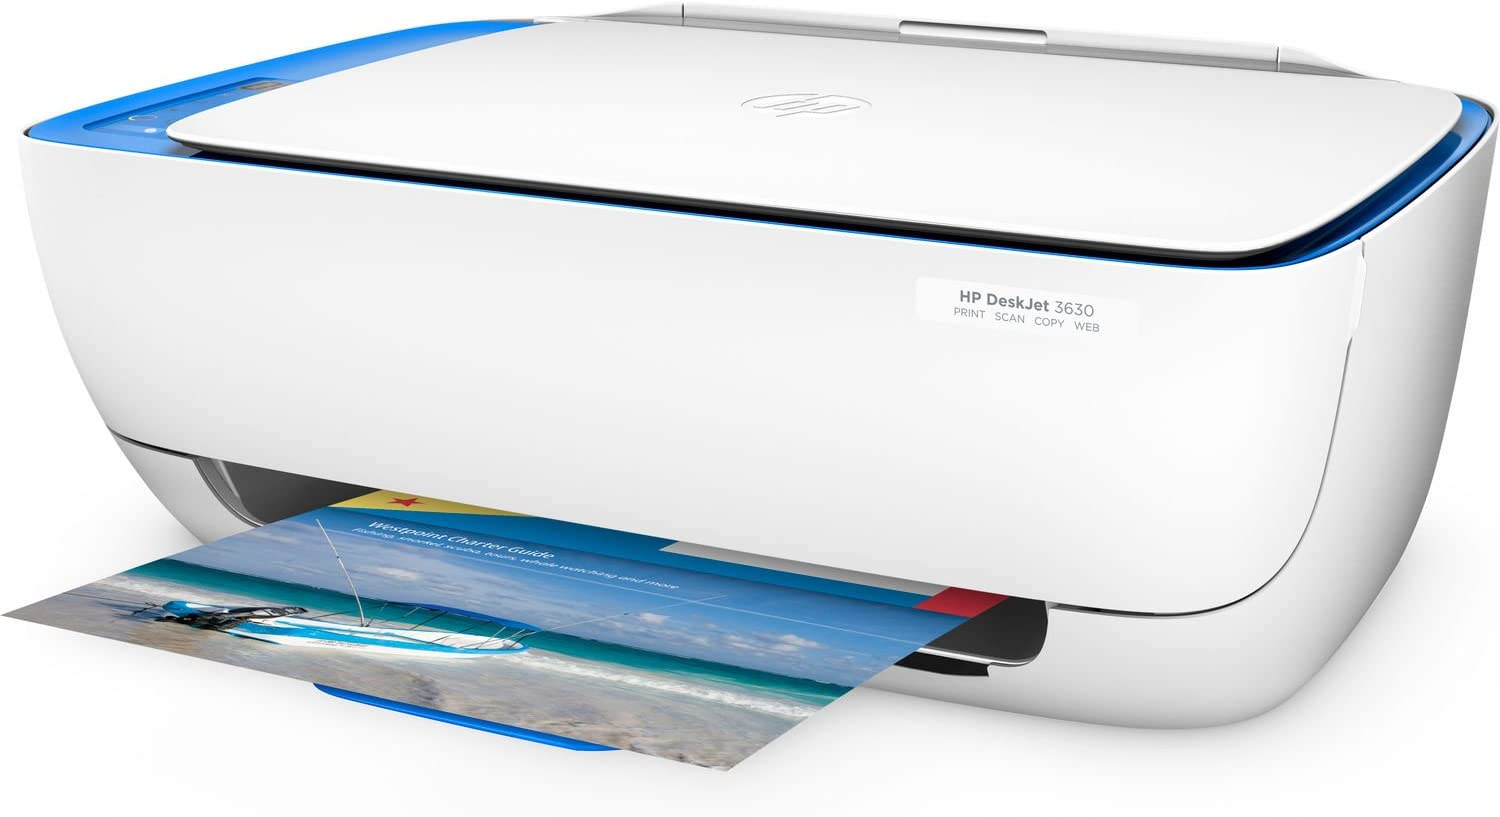 HP DeskJet 3630 Series All in One Wireless Printer (Renewed) (Blue)